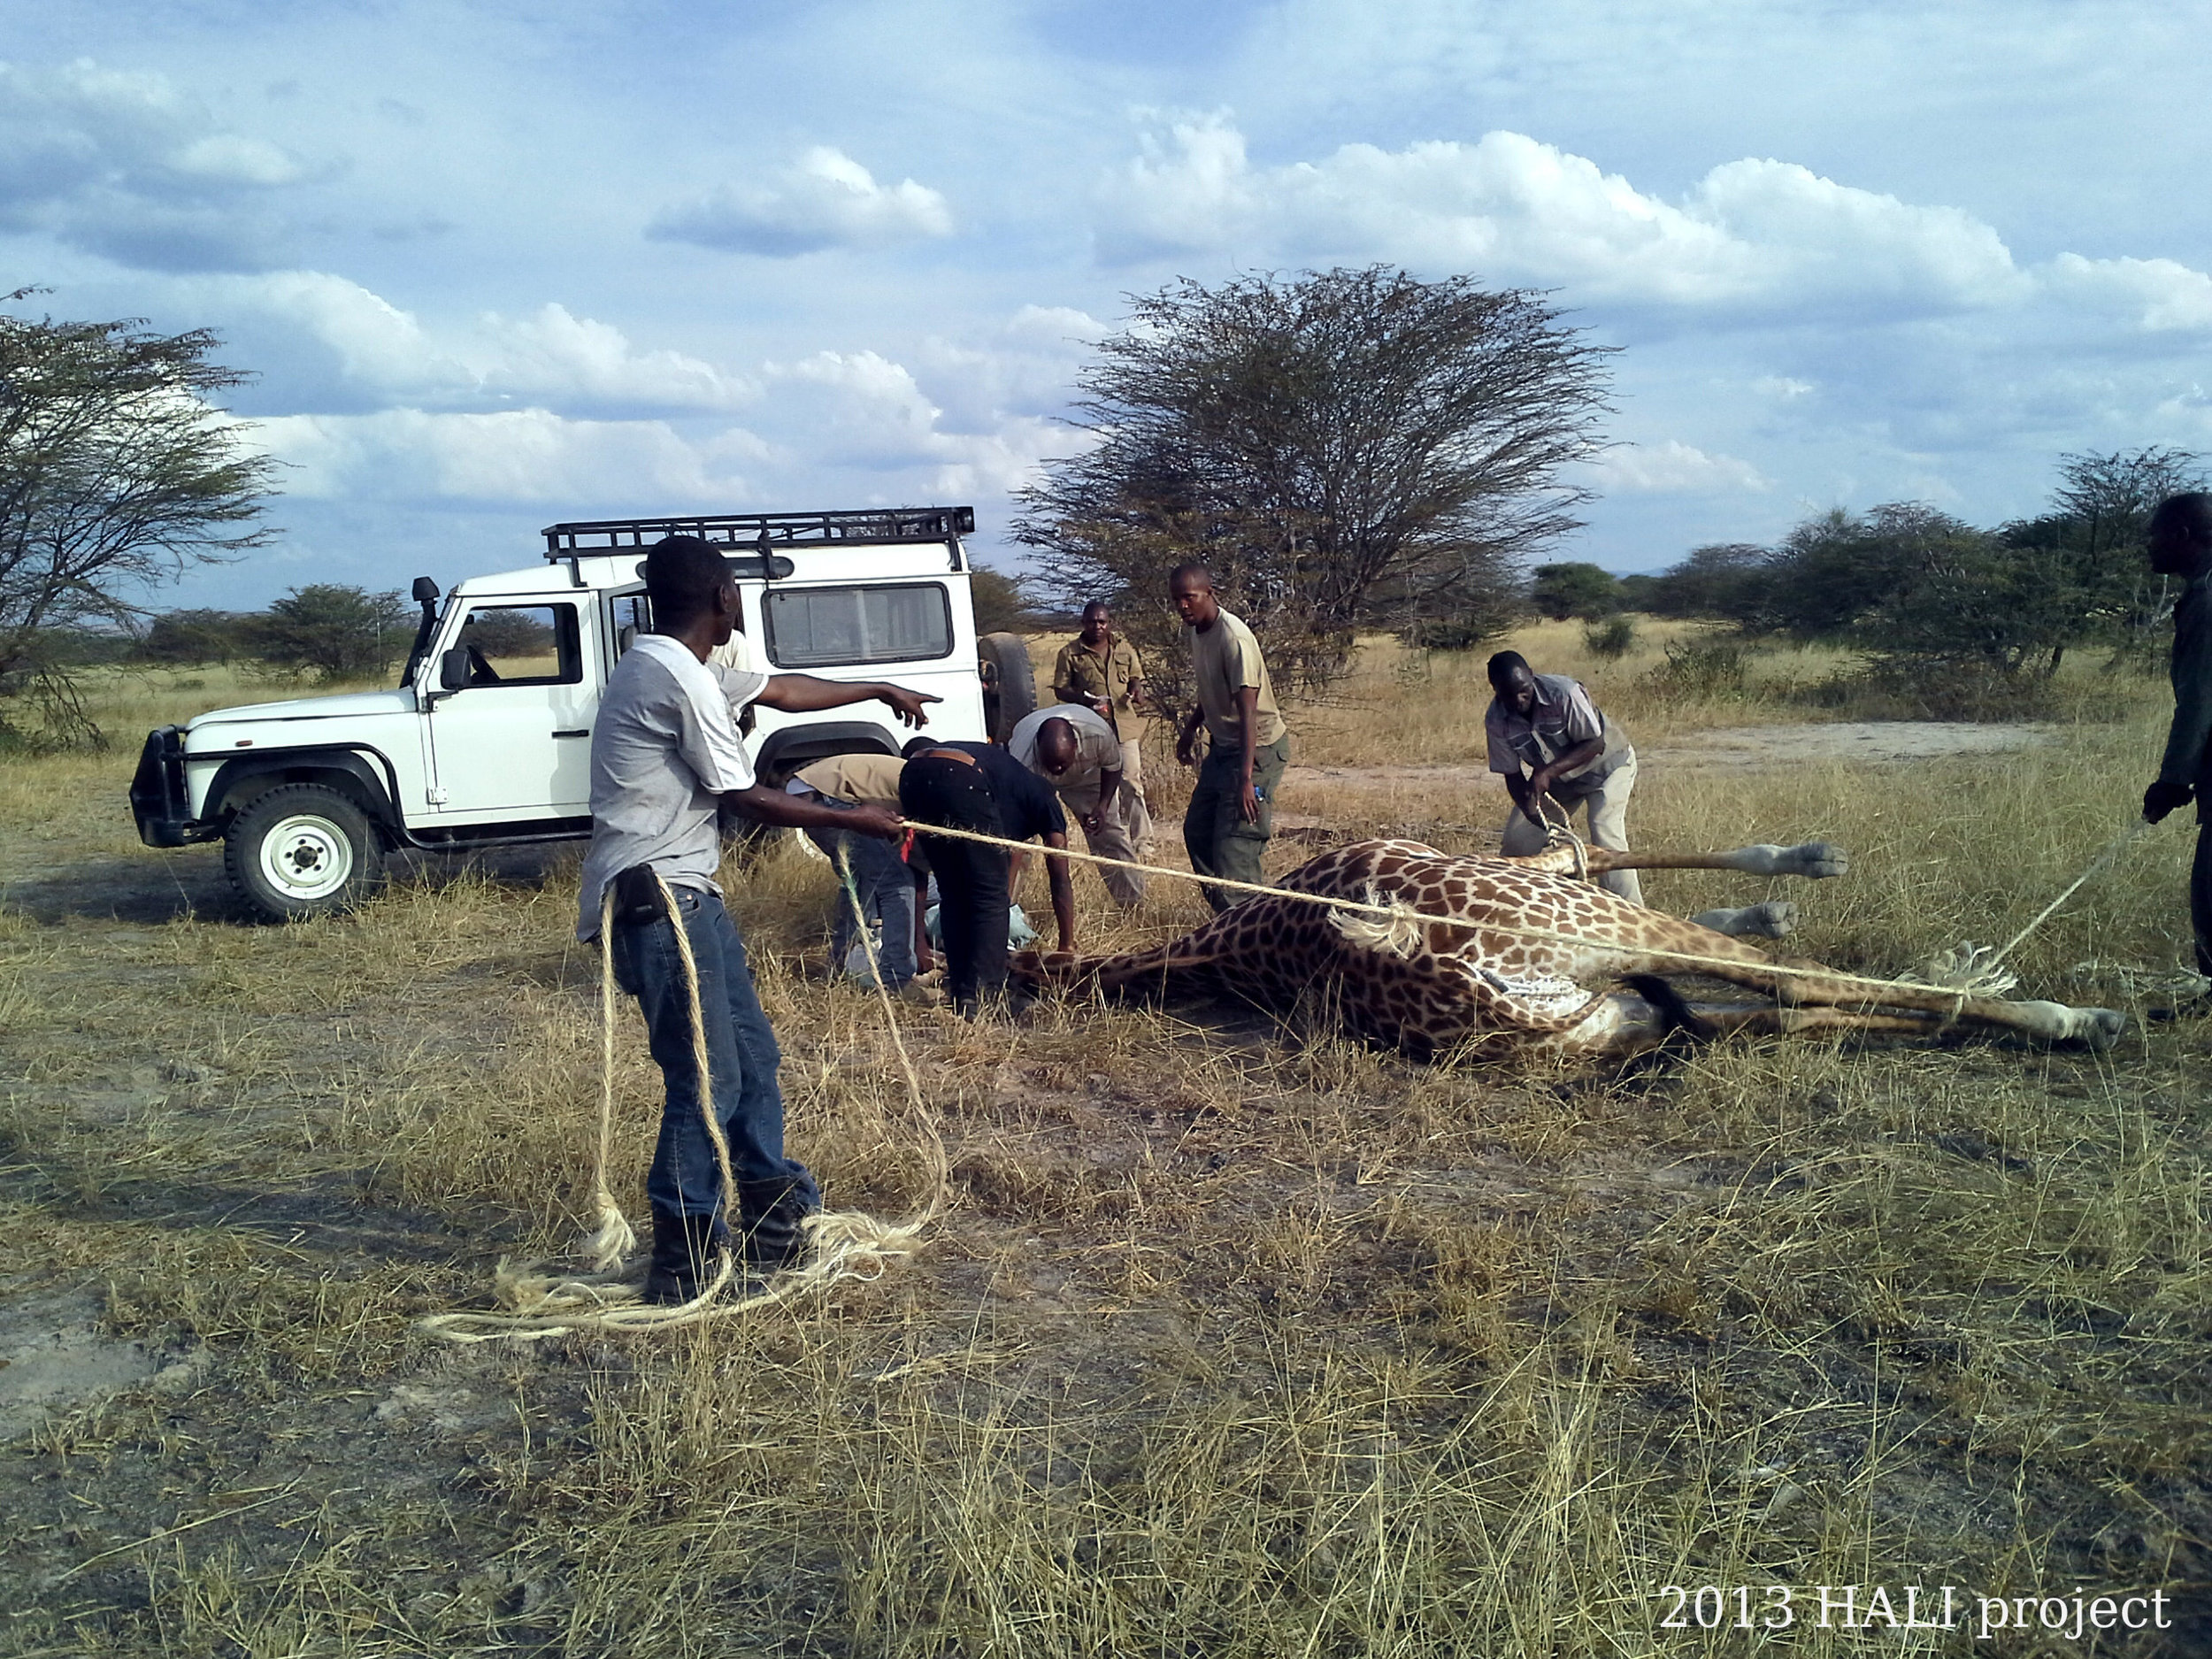 The HALI team works with Ruaha National Park veterinarians to safely restrain an adult giraffe for sampling.  Giraffes in the park have been suffering from a skin disease, leading to a partnership between the park, HALI, and Sokoine University to identify the cause of the disease and intervention options. (Photo by Goodluck Paul)